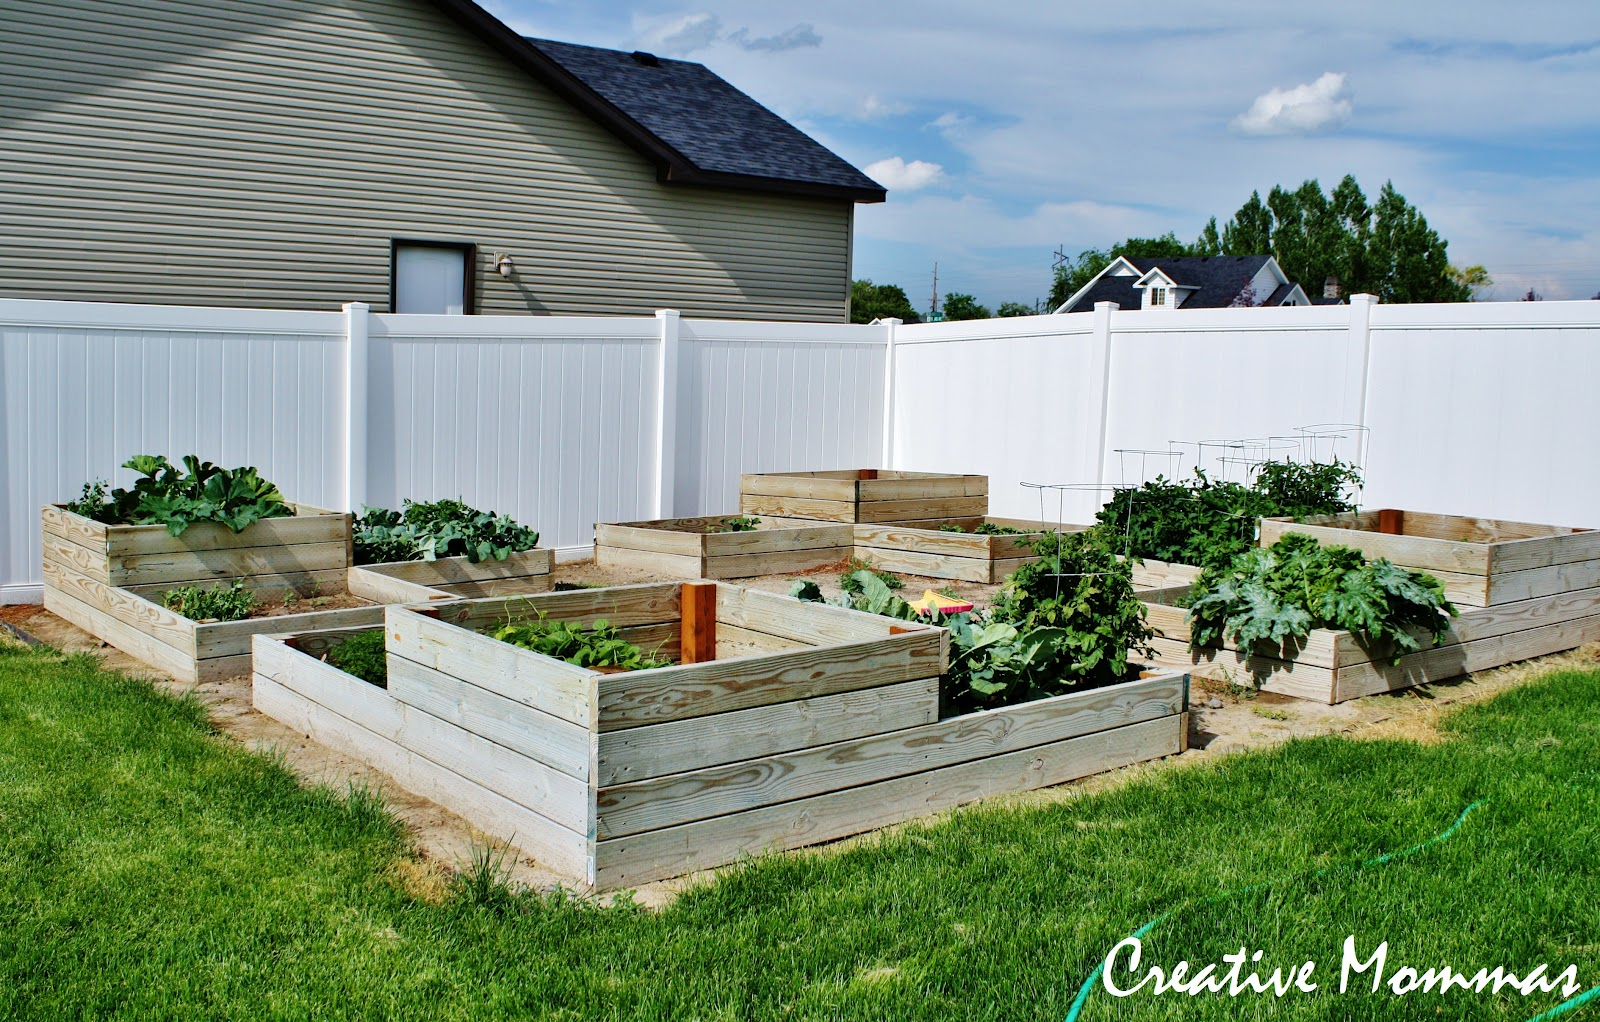 Creative mommas diy tiered raised garden beds for Garden box landscape and design